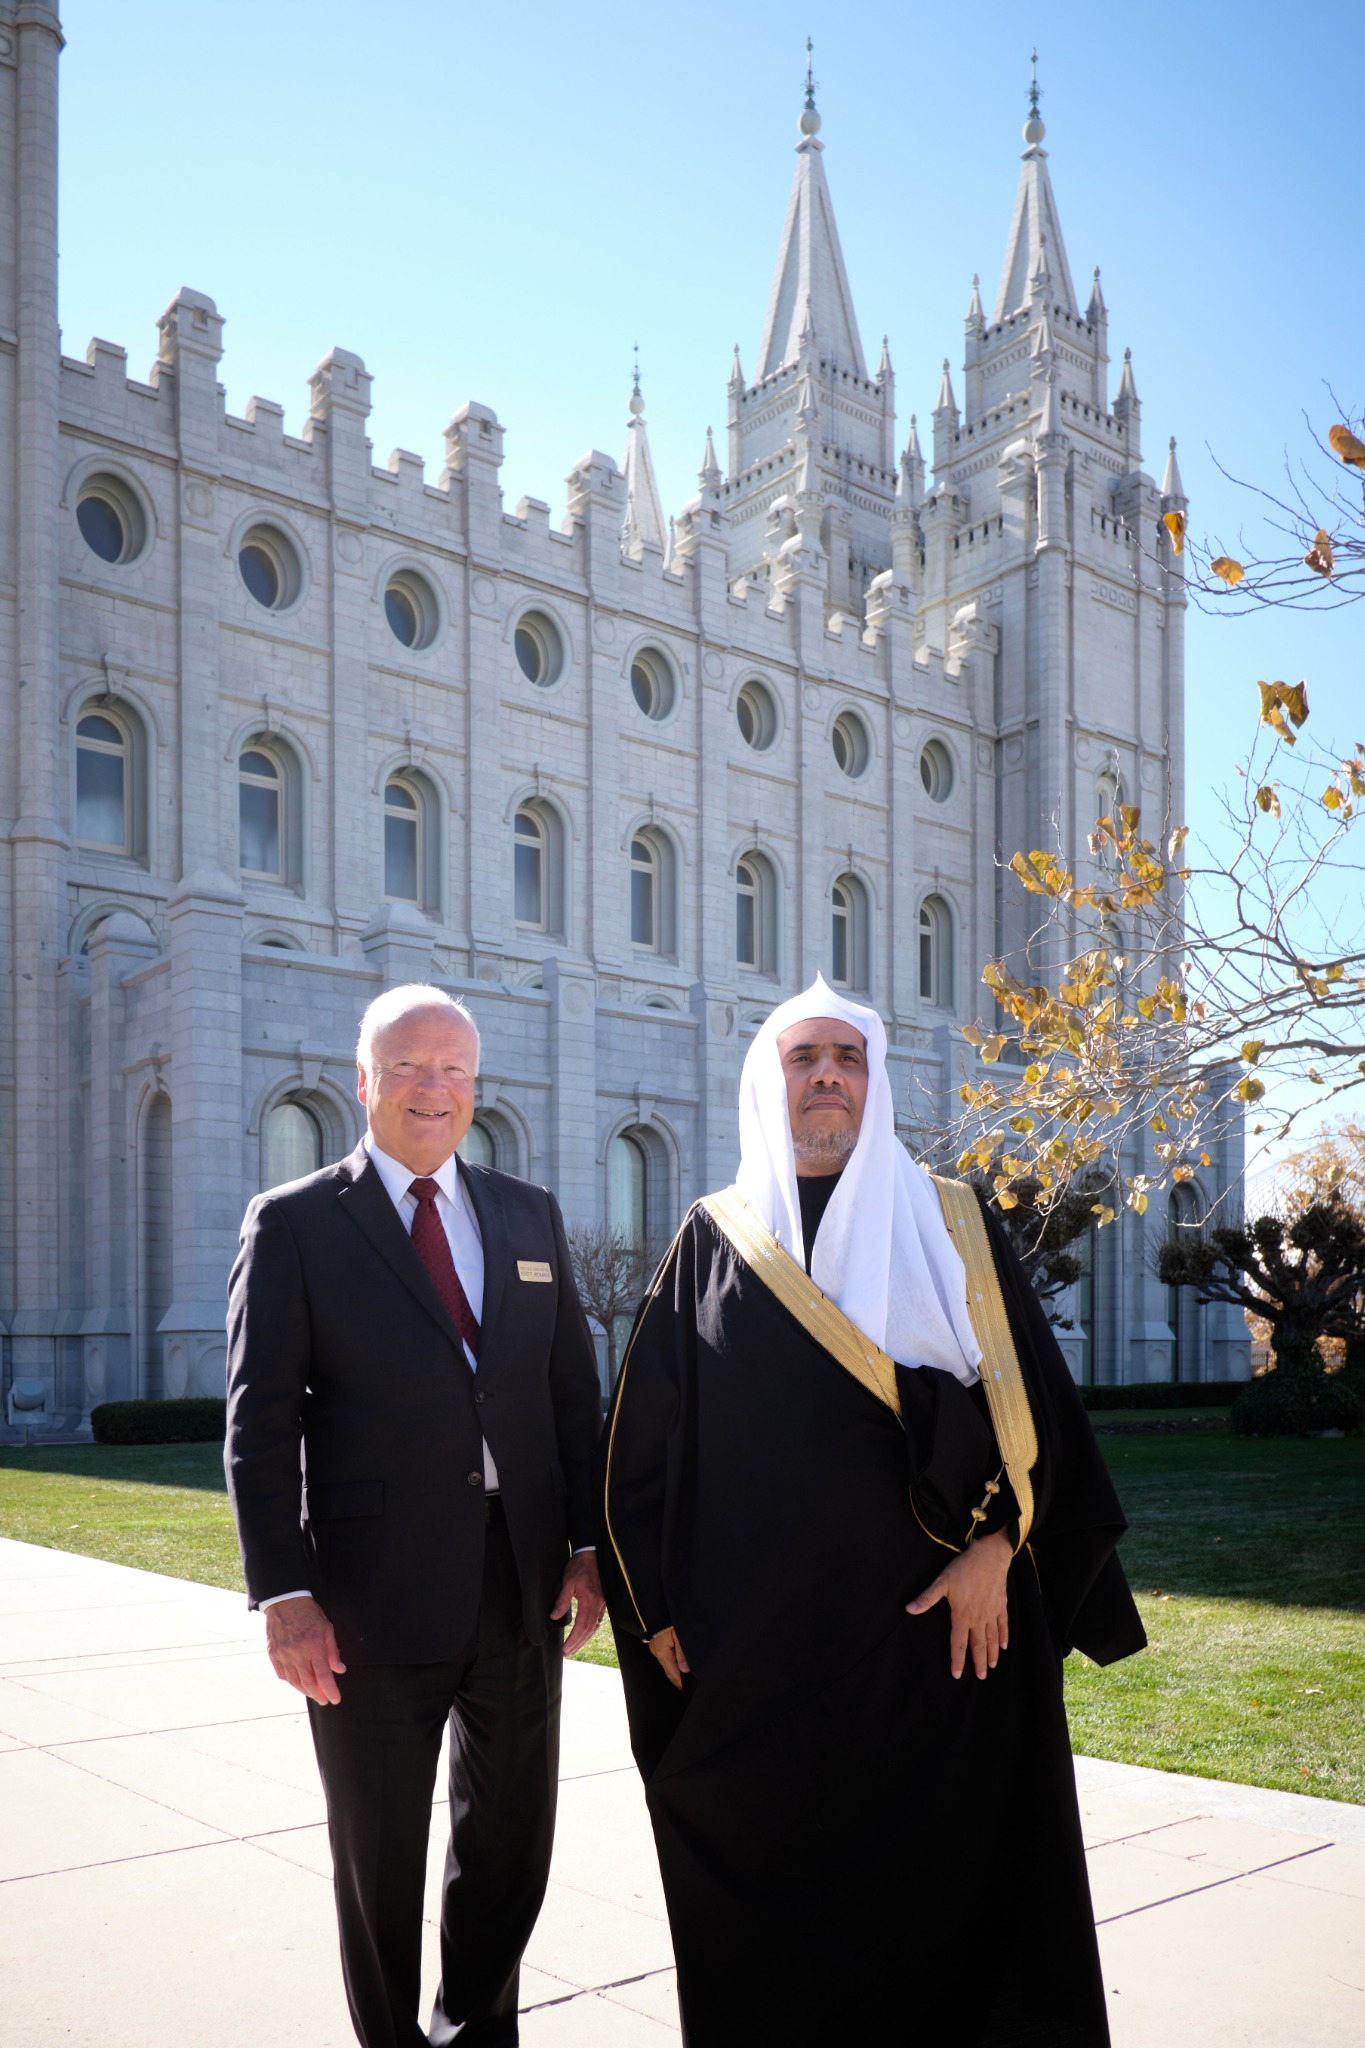 His Excellency Dr. Mohammad Al-Issa, secretary-general of the Muslim World League, tours Temple Square in Salt Lake City on Nov. 5, 2019, with Elder Kent F. Richards, director of Church Hosting and emeritus General Authority Seventy.